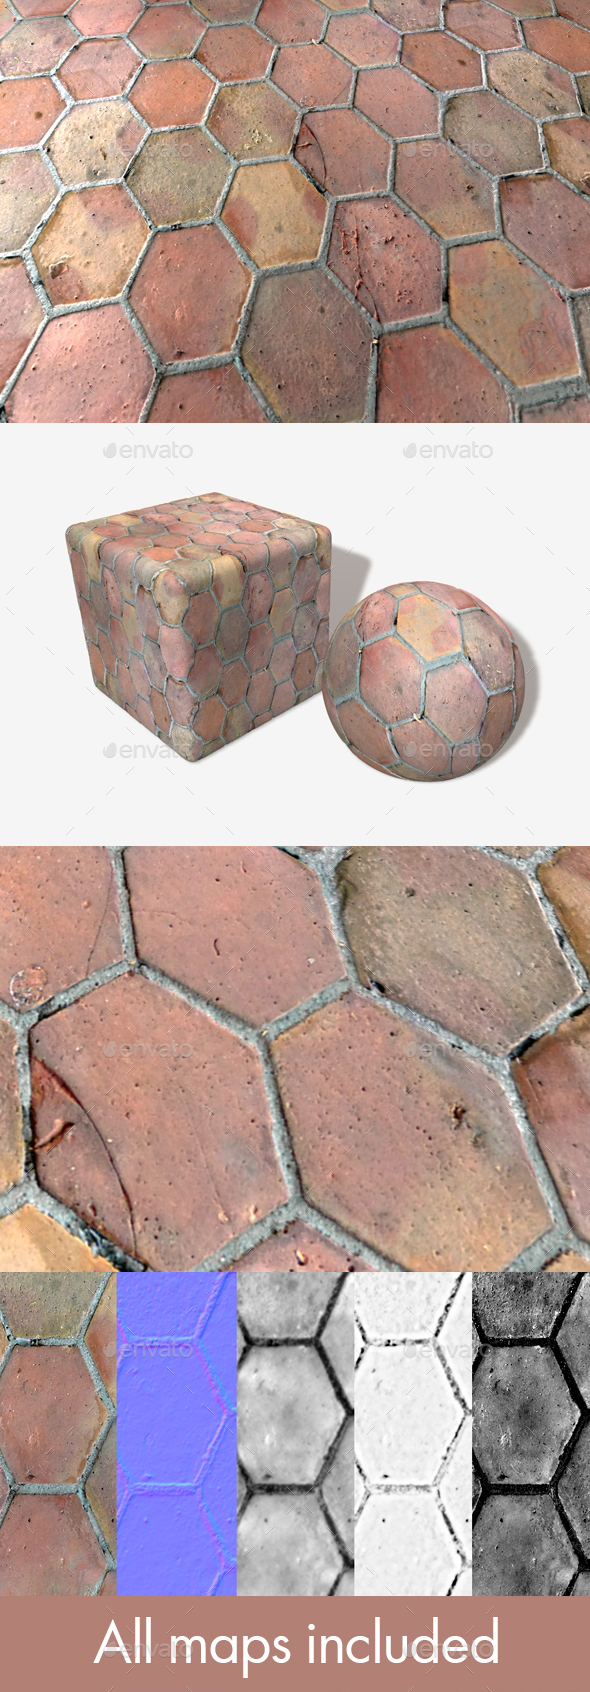 3DOcean Old Hexagon Floor Tiles Seamless Texture 20588842